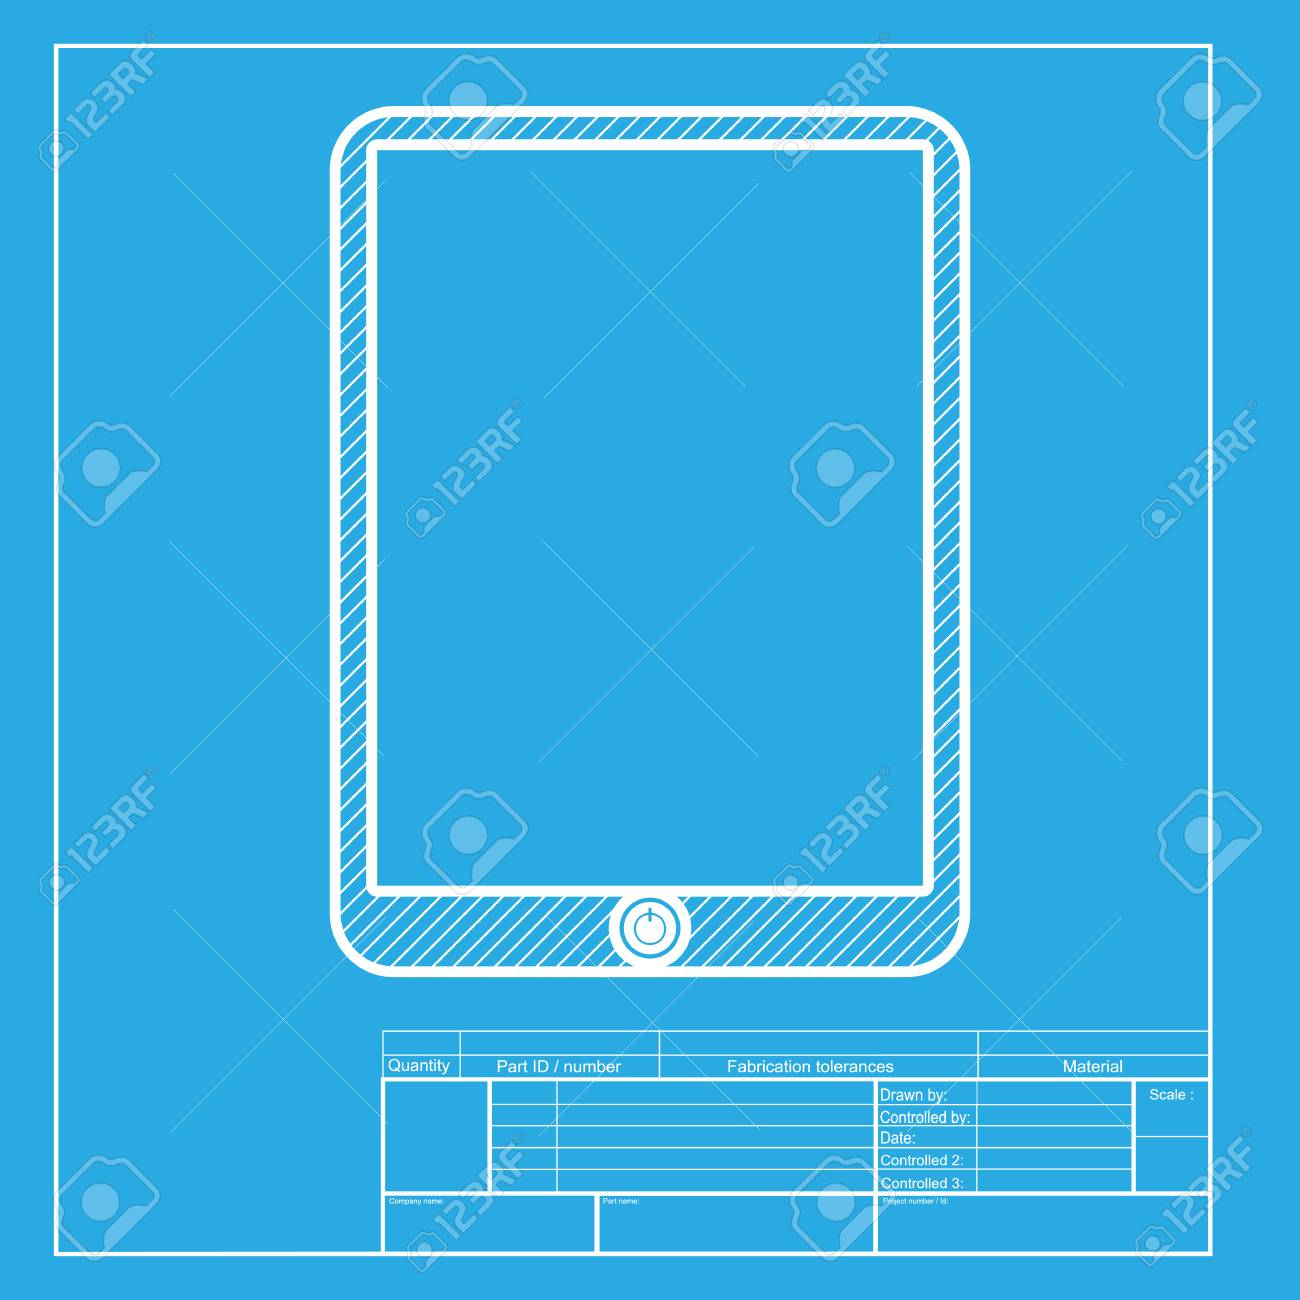 computer tablet sign white section of icon on blueprint template